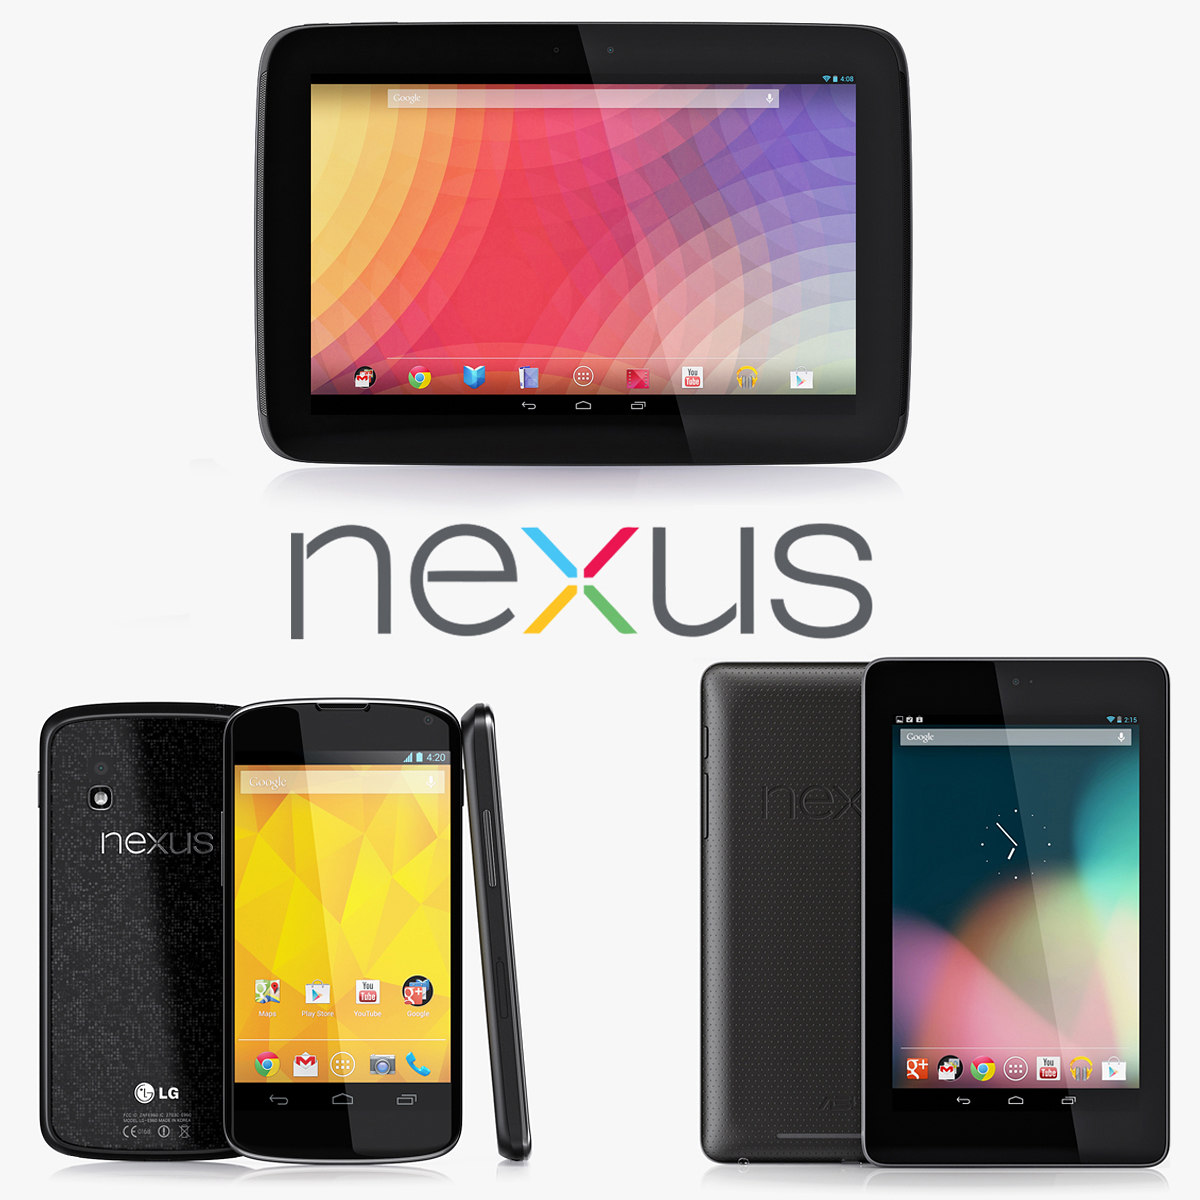 Google_Nexus_Collection_000.jpg